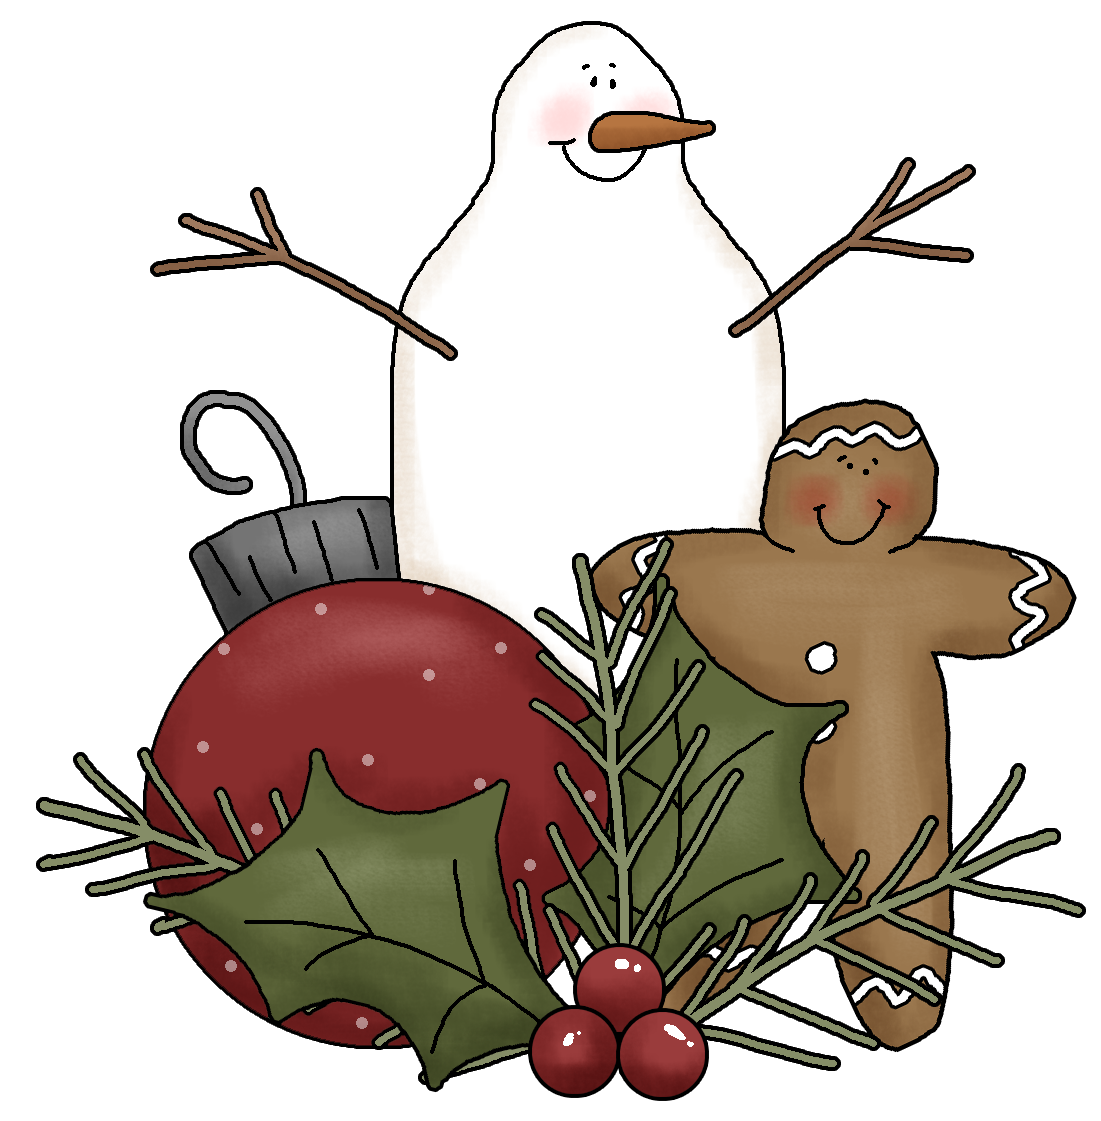 Country clipart garden road. Mare stare holiday fun